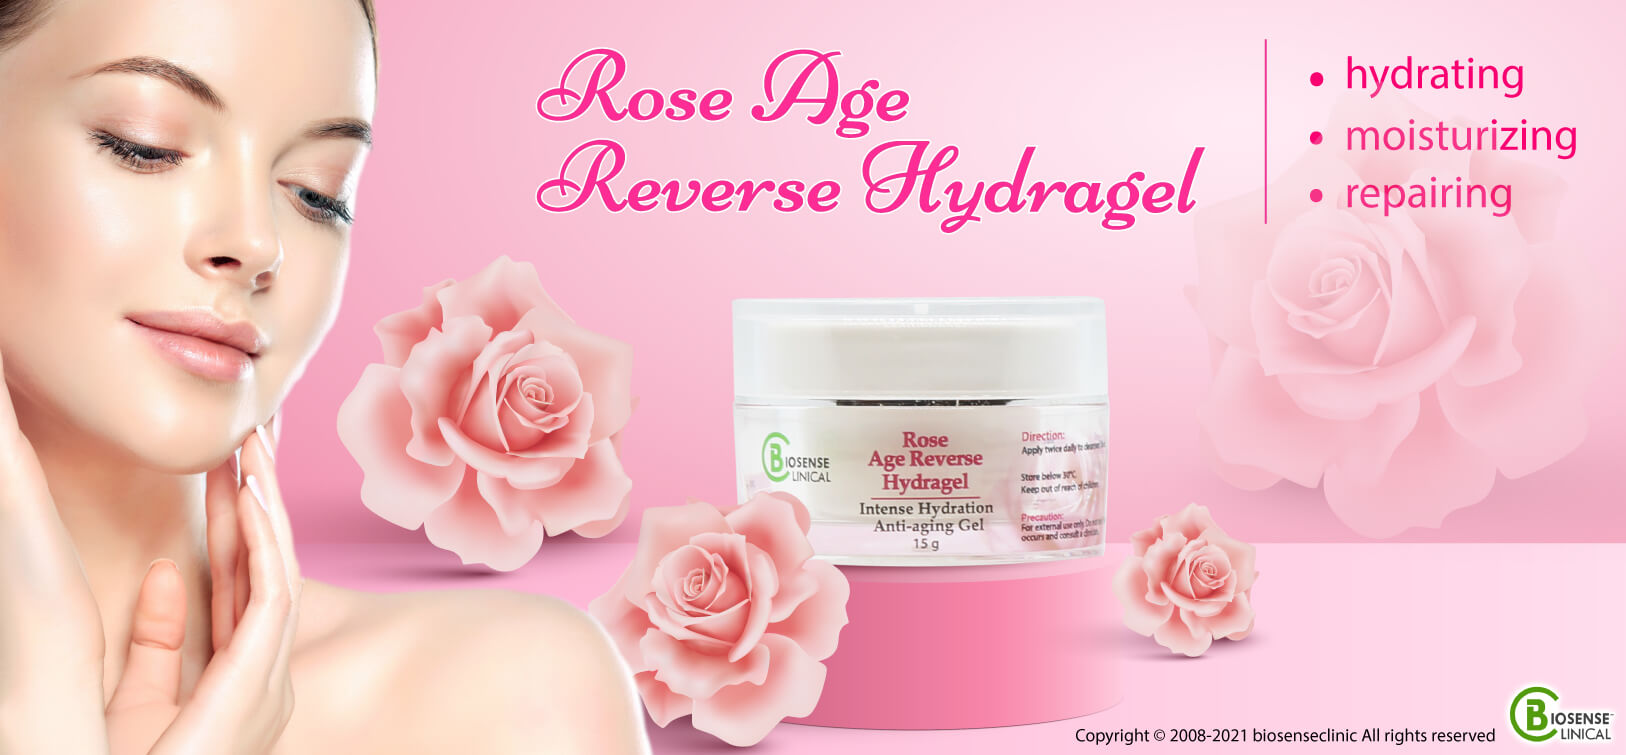 BiosenseClinical Professional Custom Compound Rose Age Reverse HydraGel banner